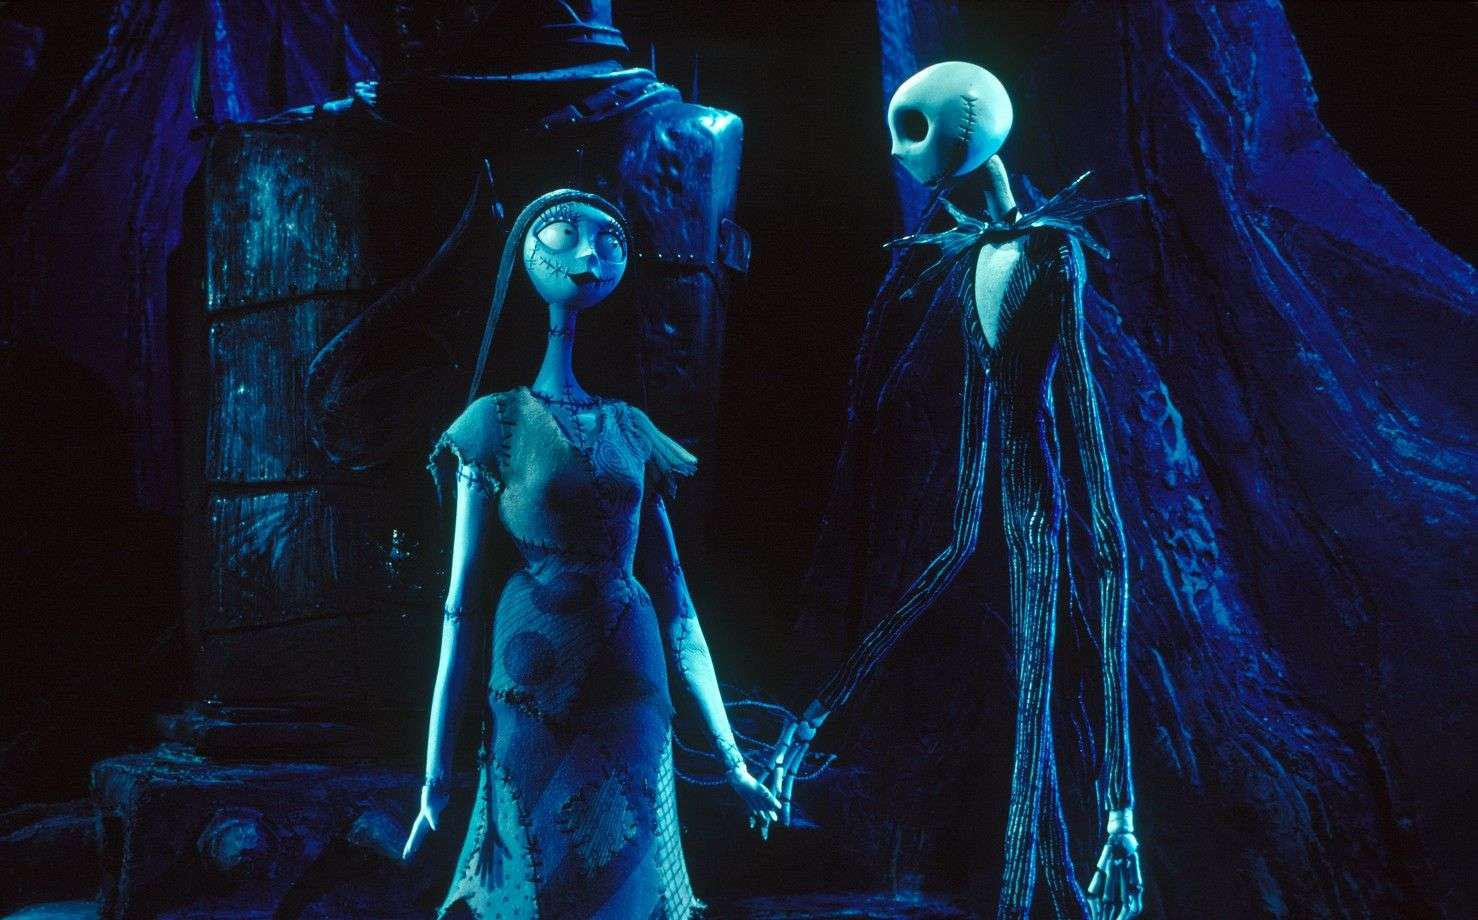 Nightmare Before Christmas the nightmare before christmasJack Nightmare Before Christmas